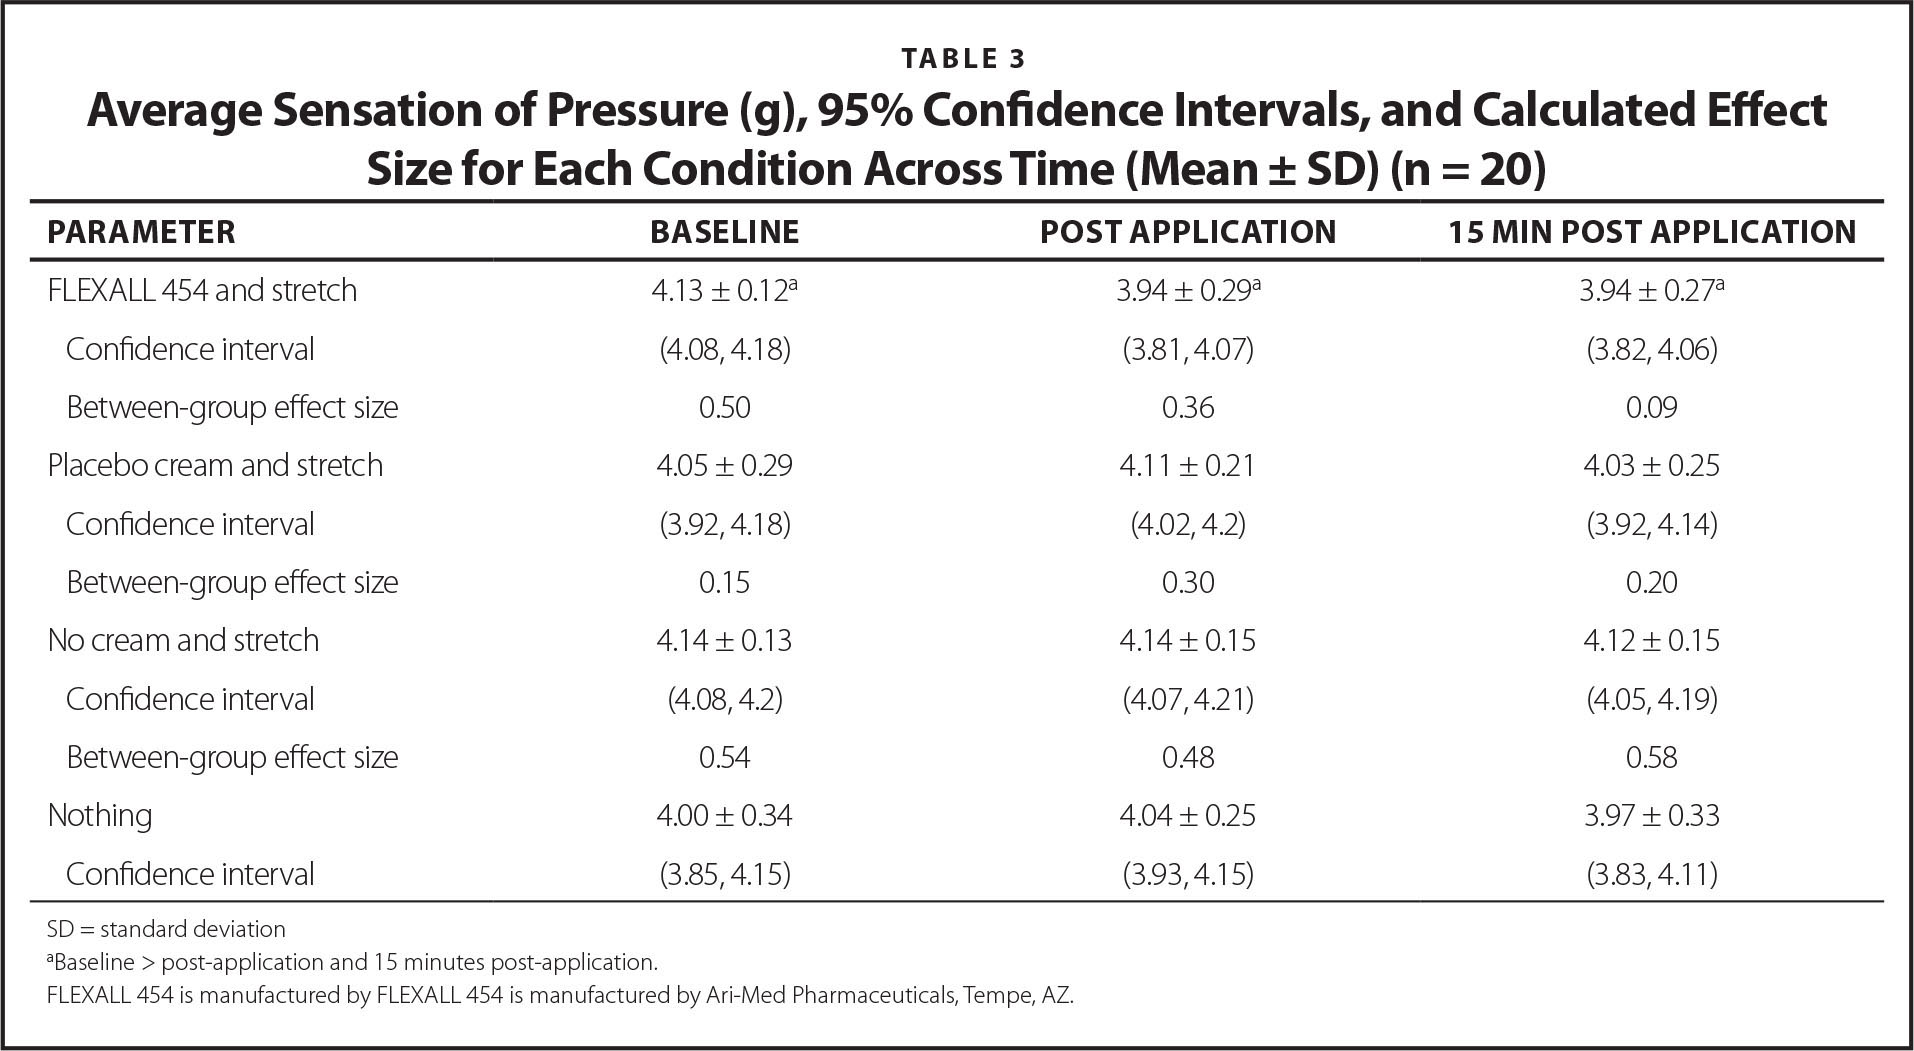 Average Sensation of Pressure (g), 95% Confidence Intervals, and Calculated Effect Size for Each Condition Across Time (Mean ± SD) (n = 20)